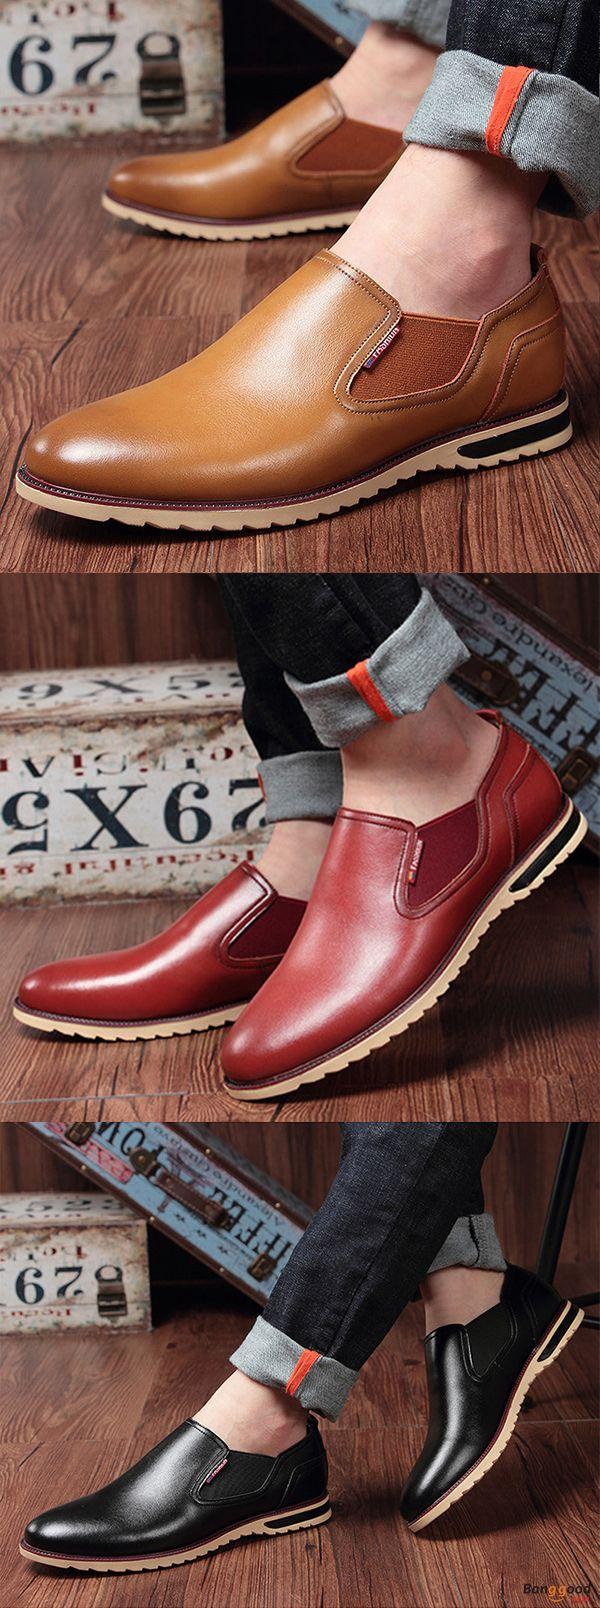 US$39.99 + Free shipping. #FlashDeal Men Shoes, Leather Shoes, Slip On Shoes, Casual Style, Business Shoes, Oxford Shoes. Color: Black, Brown, Red, Blue, Yellow. Stylish Oxford Shoes.